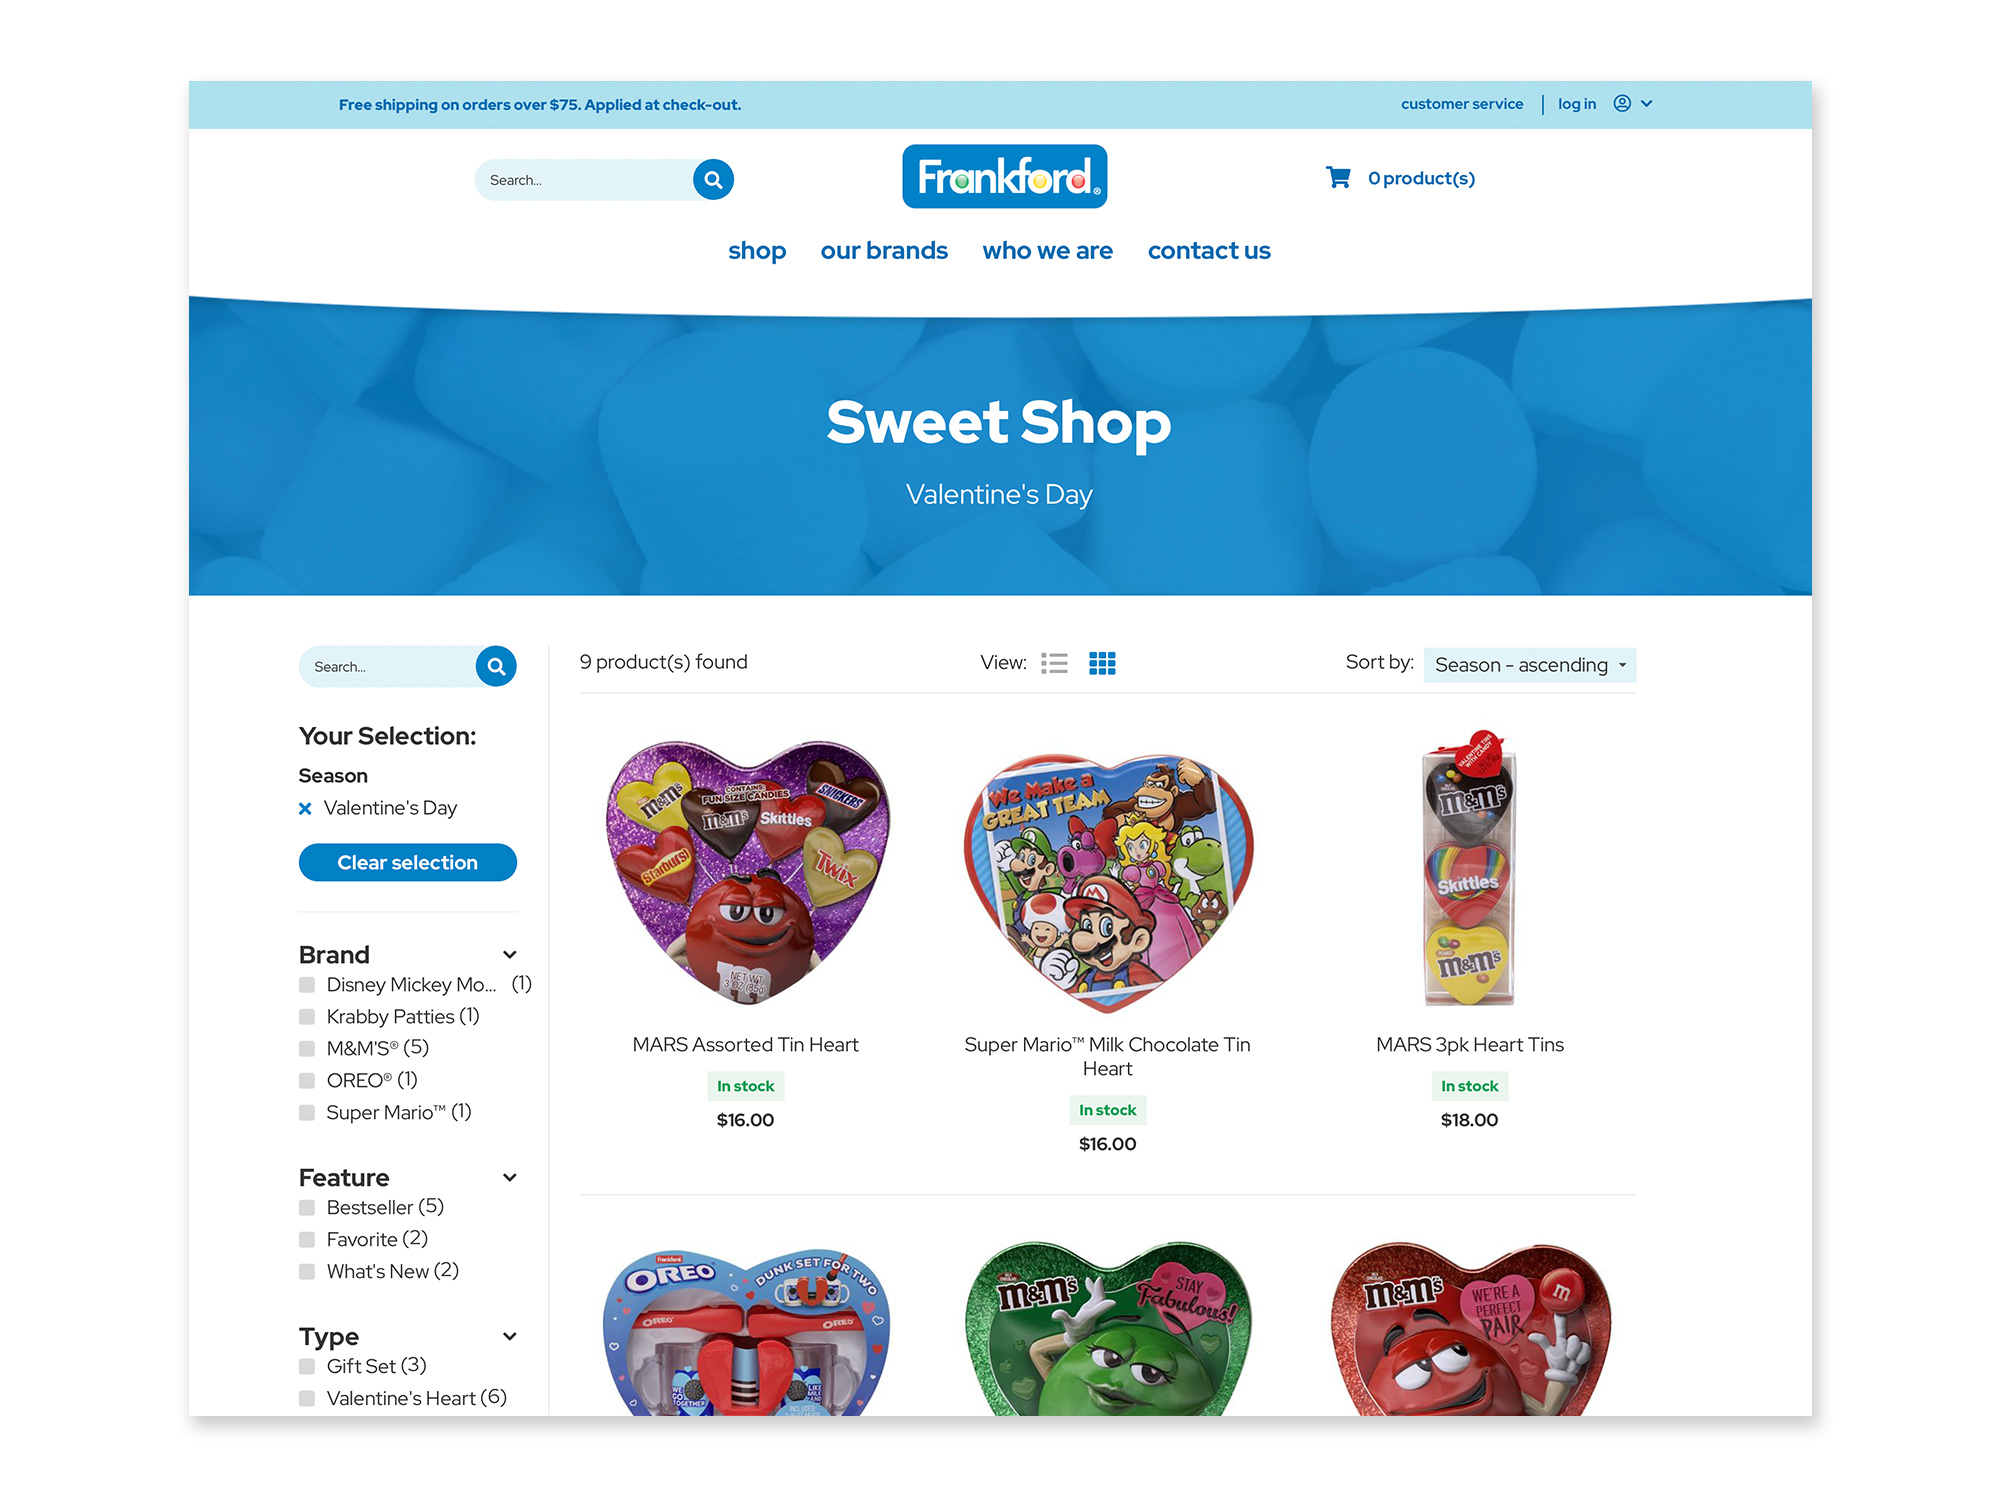 The Frankford Candy shop page.